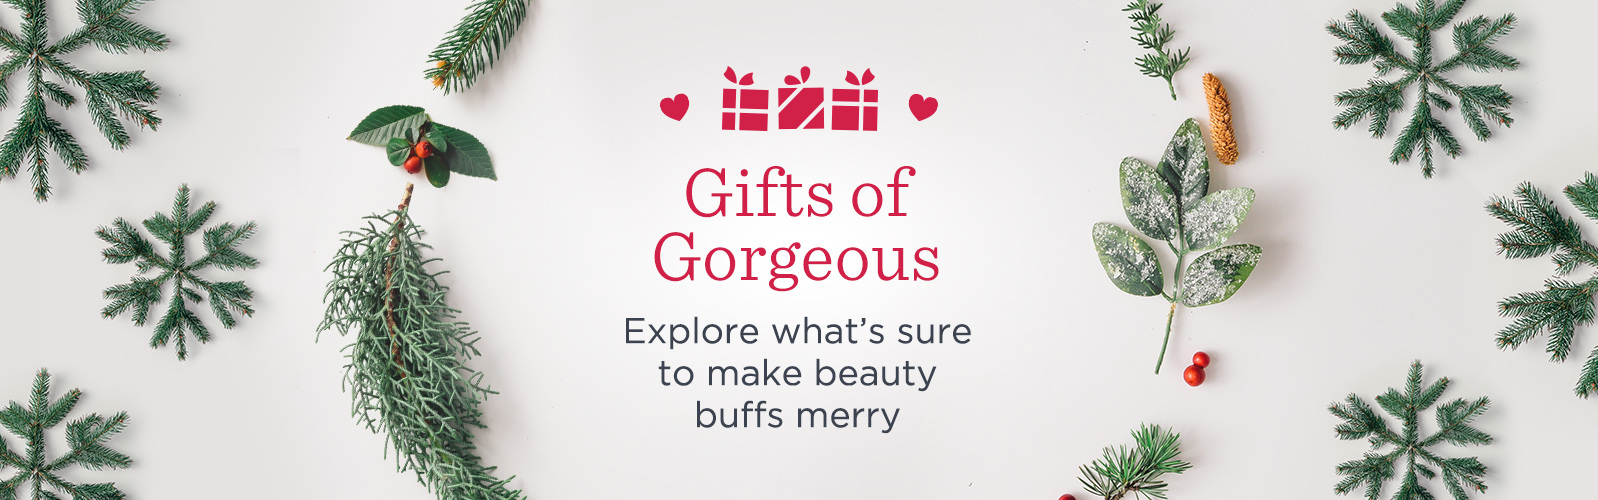 Gifts of Gorgeous  Explore what's sure to make beauty buffs merry